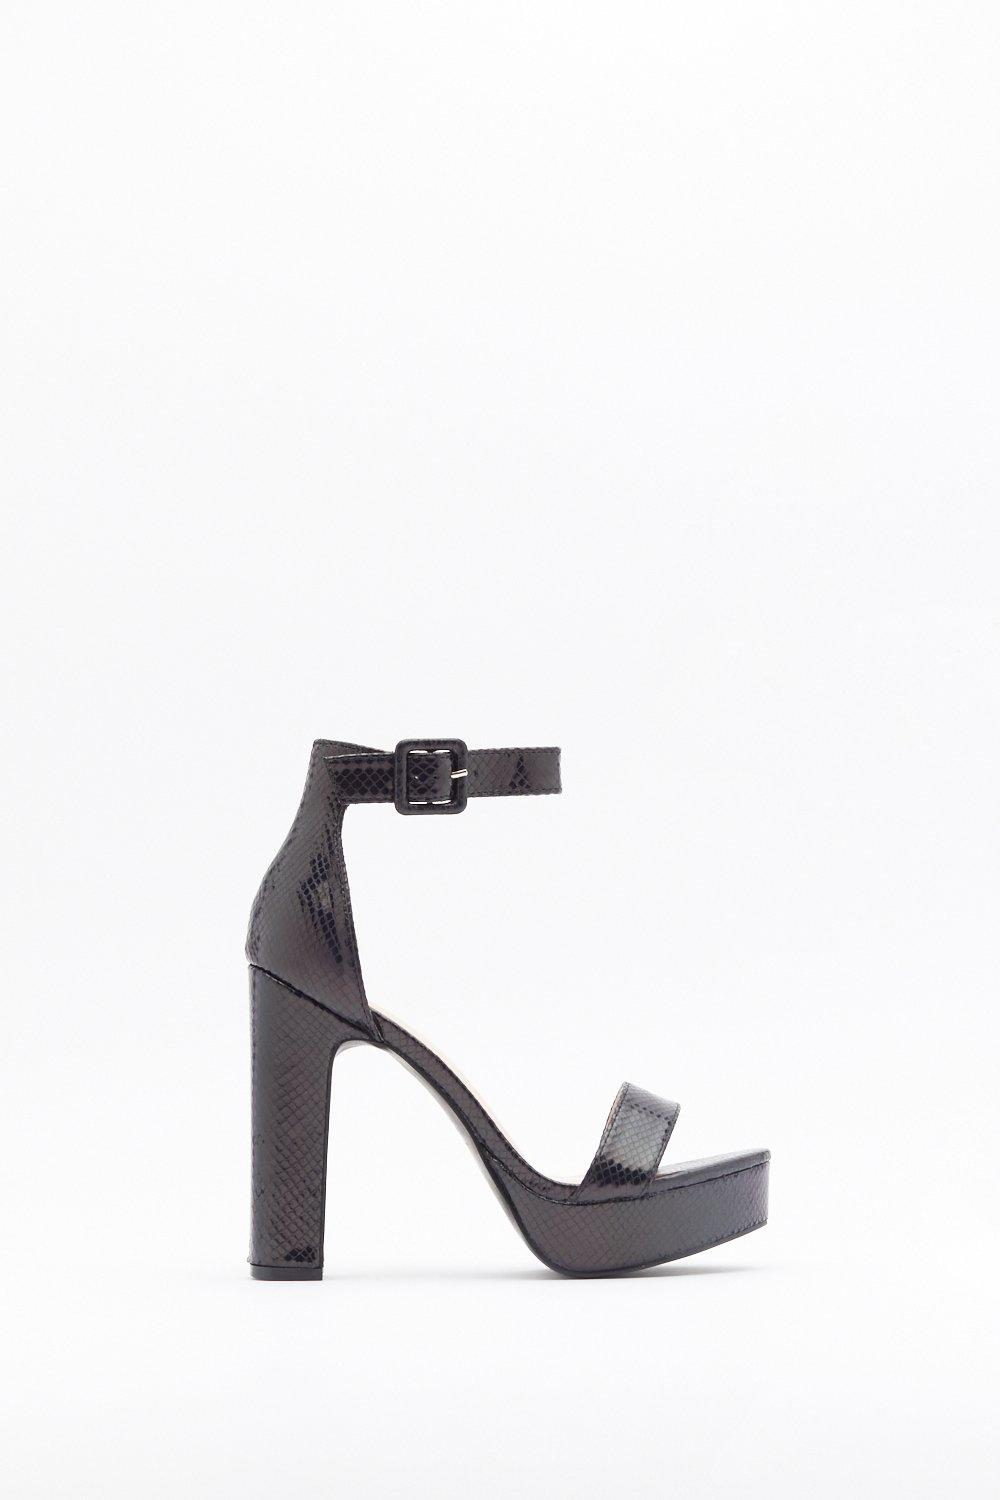 eb096929f5 Snake You Stand Out Faux Leather Platform Heels | Shop Clothes at ...